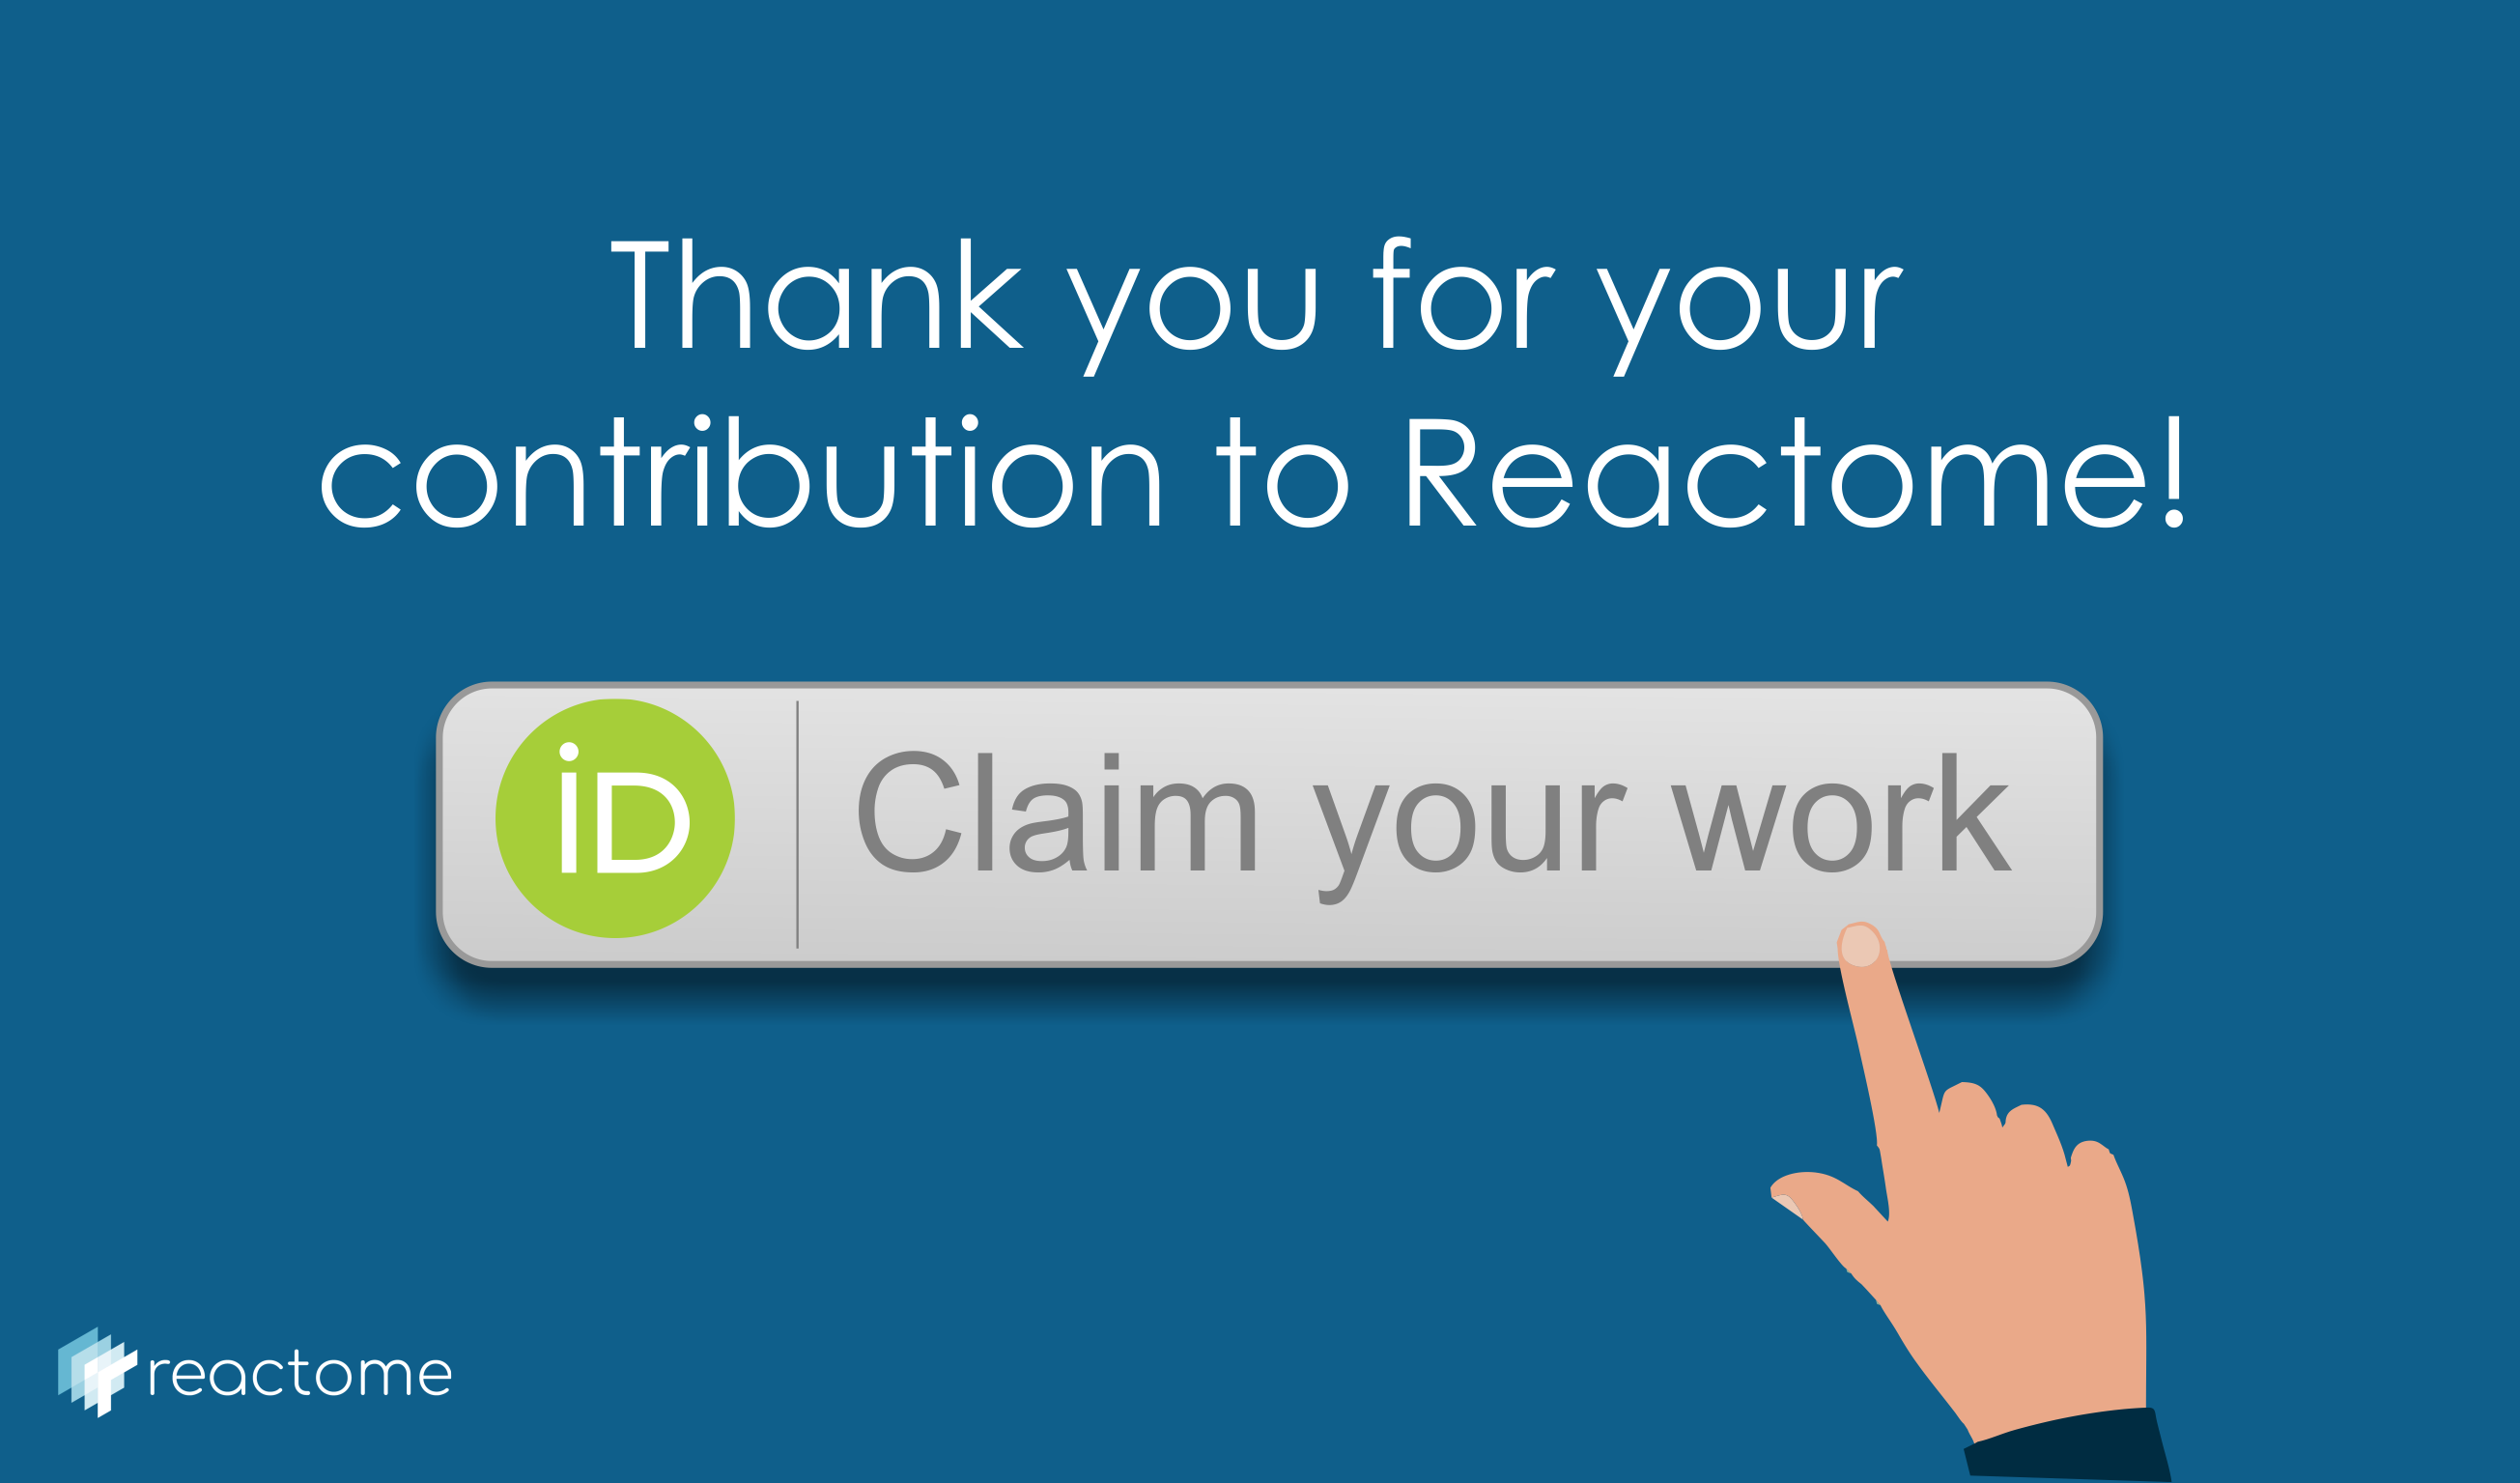 claim your reactome work into your orcid account image